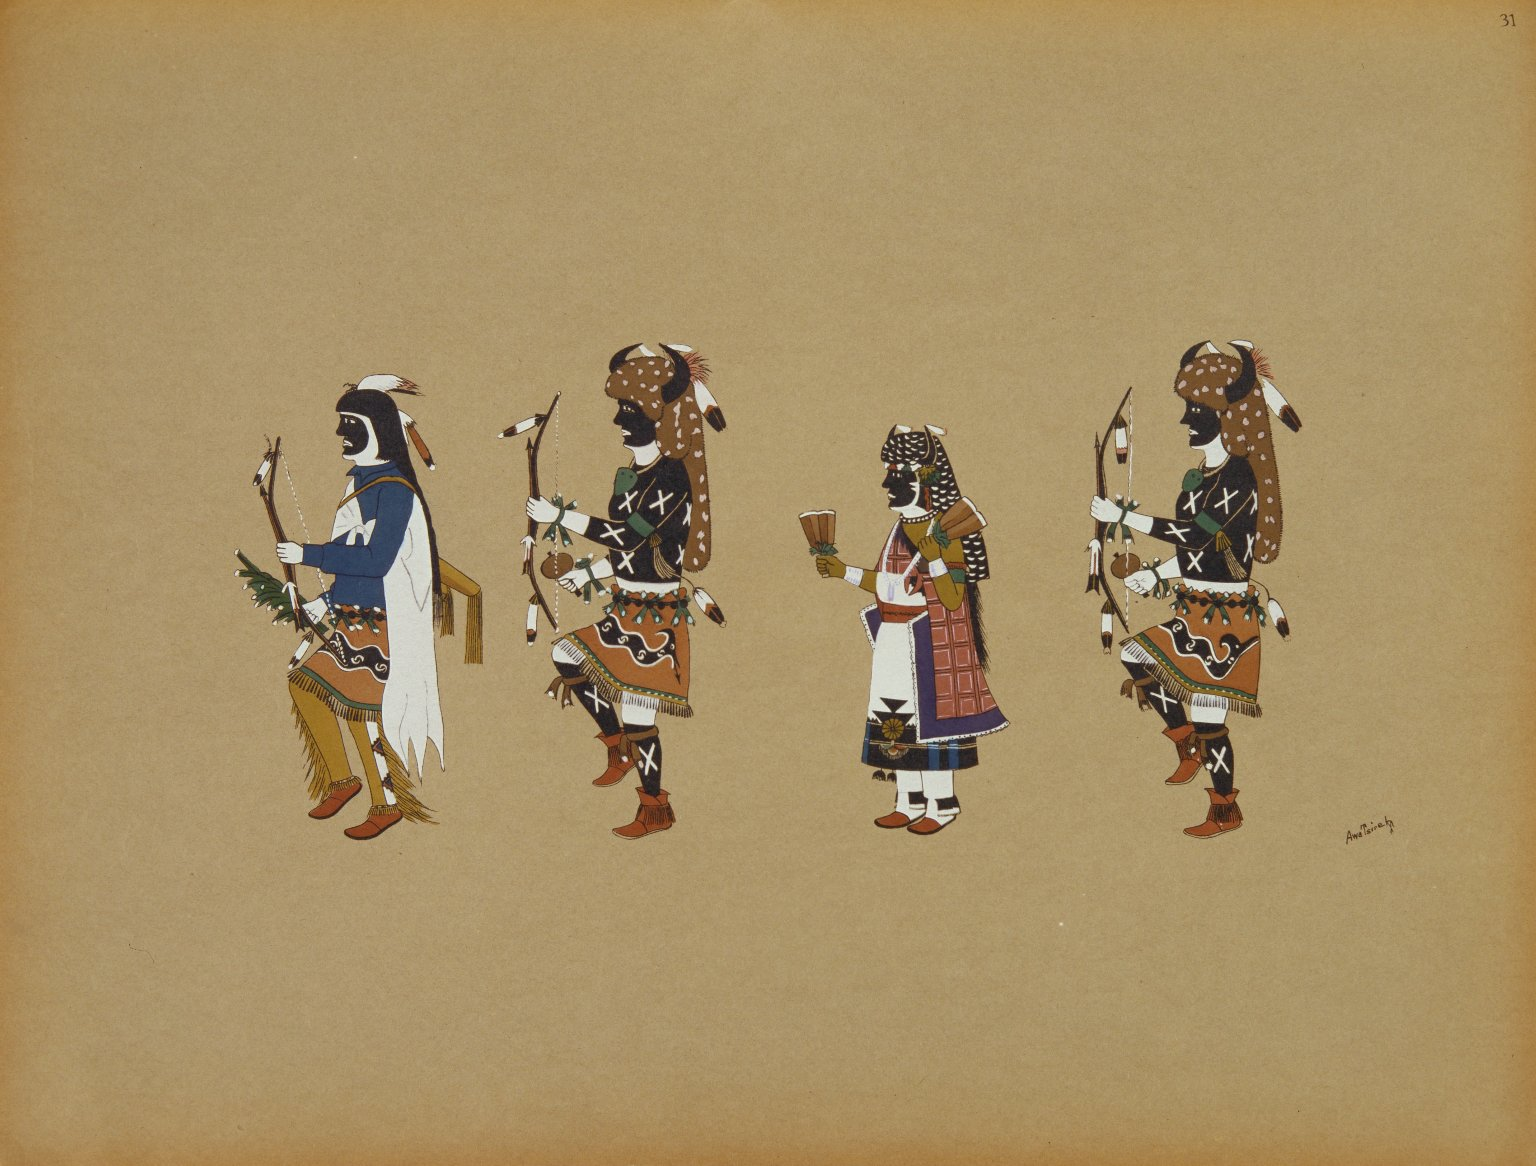 Pueblo Indian painting; 50 reproductions of watercolor paintings by Indian artists of the New Mexican pueblos of San Ildefonso and Sia